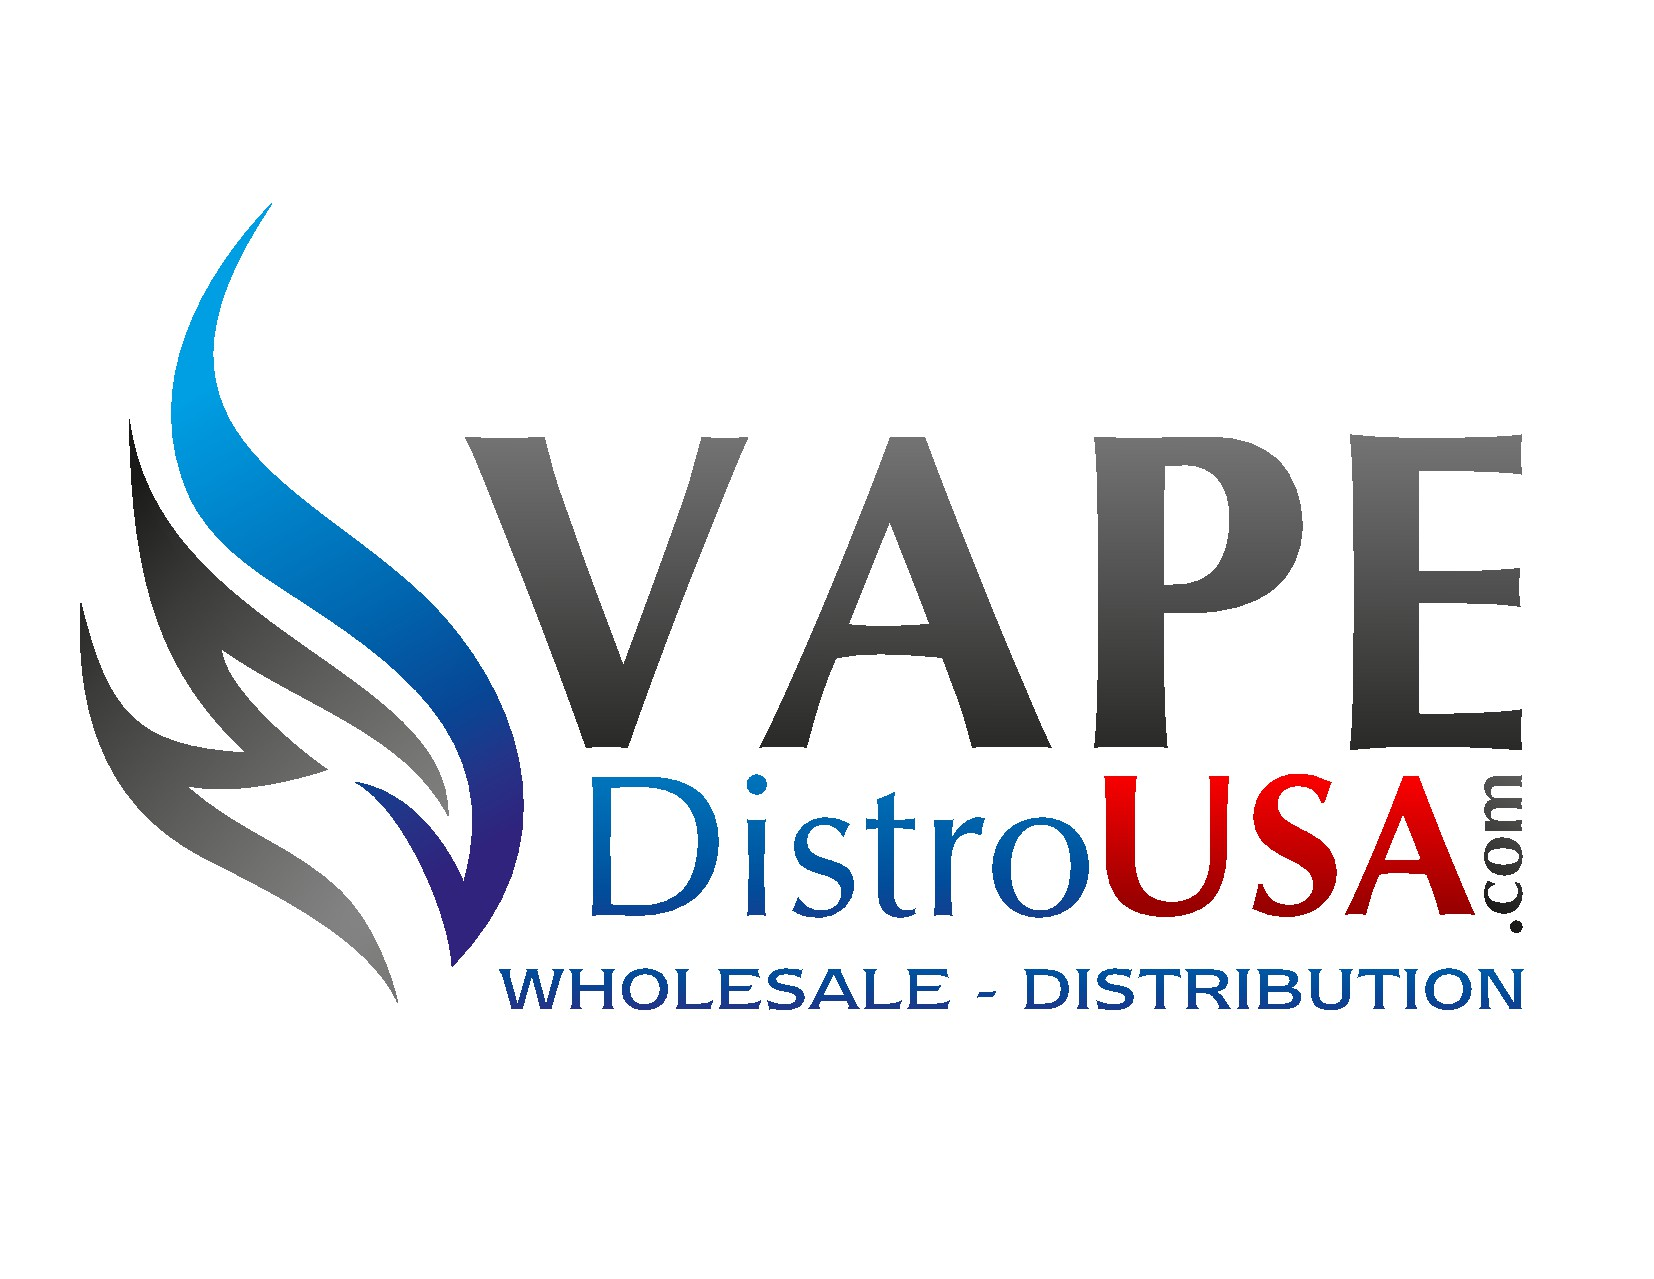 Vapor wholesale website needs a new sophiscated logo